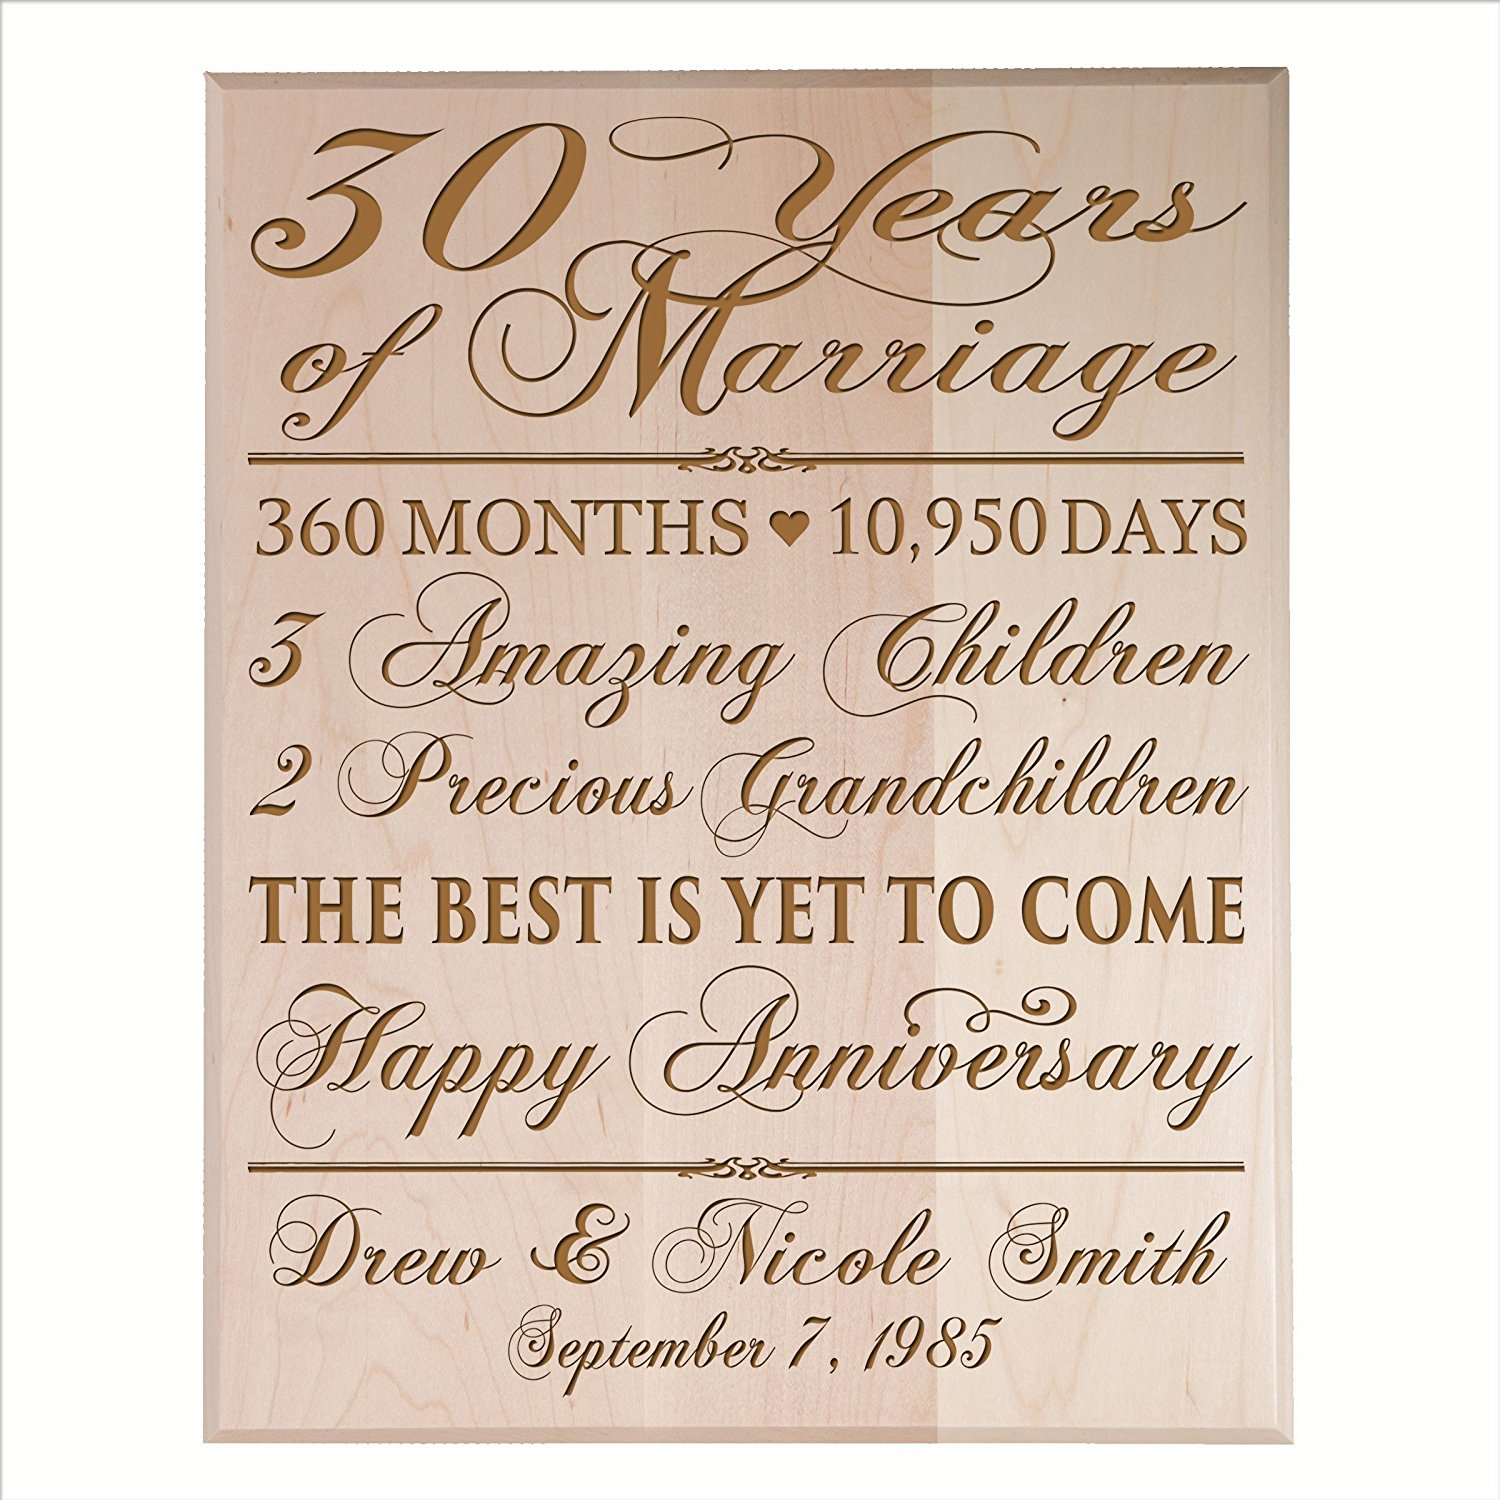 """Personalized 30th Anniversary Gifts for him her Couple parents, Custom Made 30 year Anniversary Gifts ideas Wall Plaque 12"""" x 15"""" By Dayspring Milestone (Maple Veneer Wood)"""